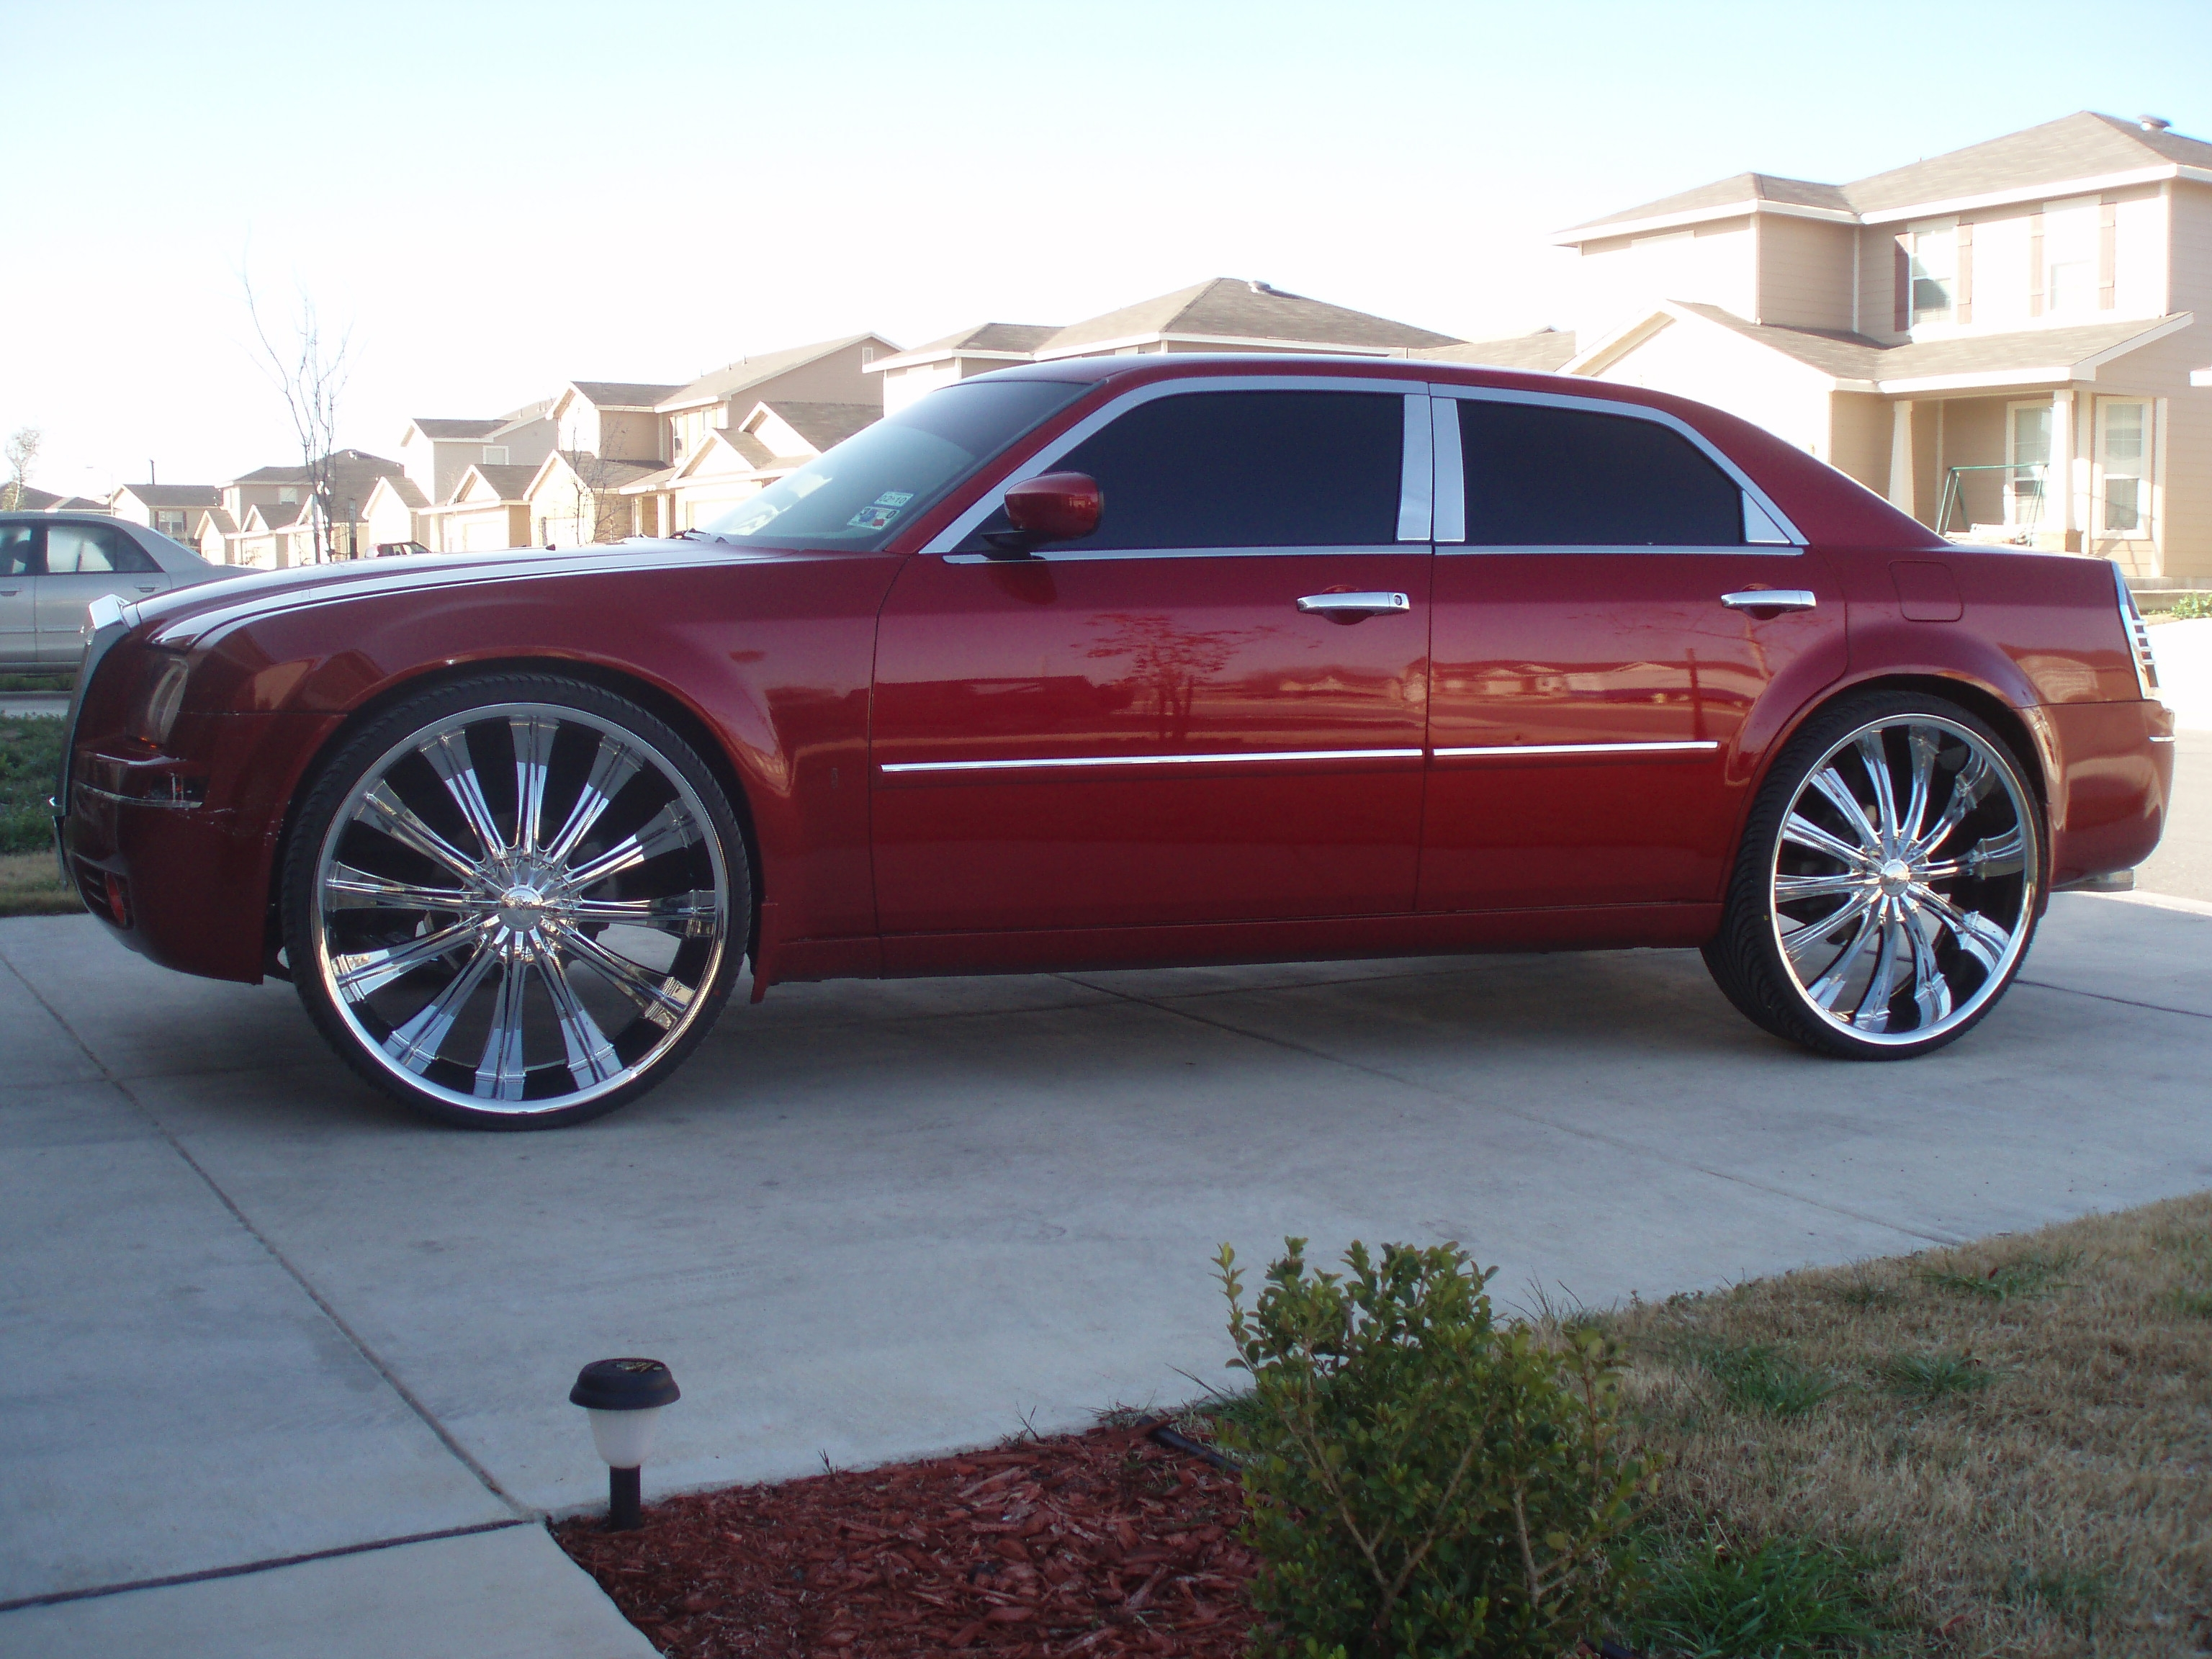 24 Inch Rims Will Fit Chrysler 300 2005 Owners Manual Images Of